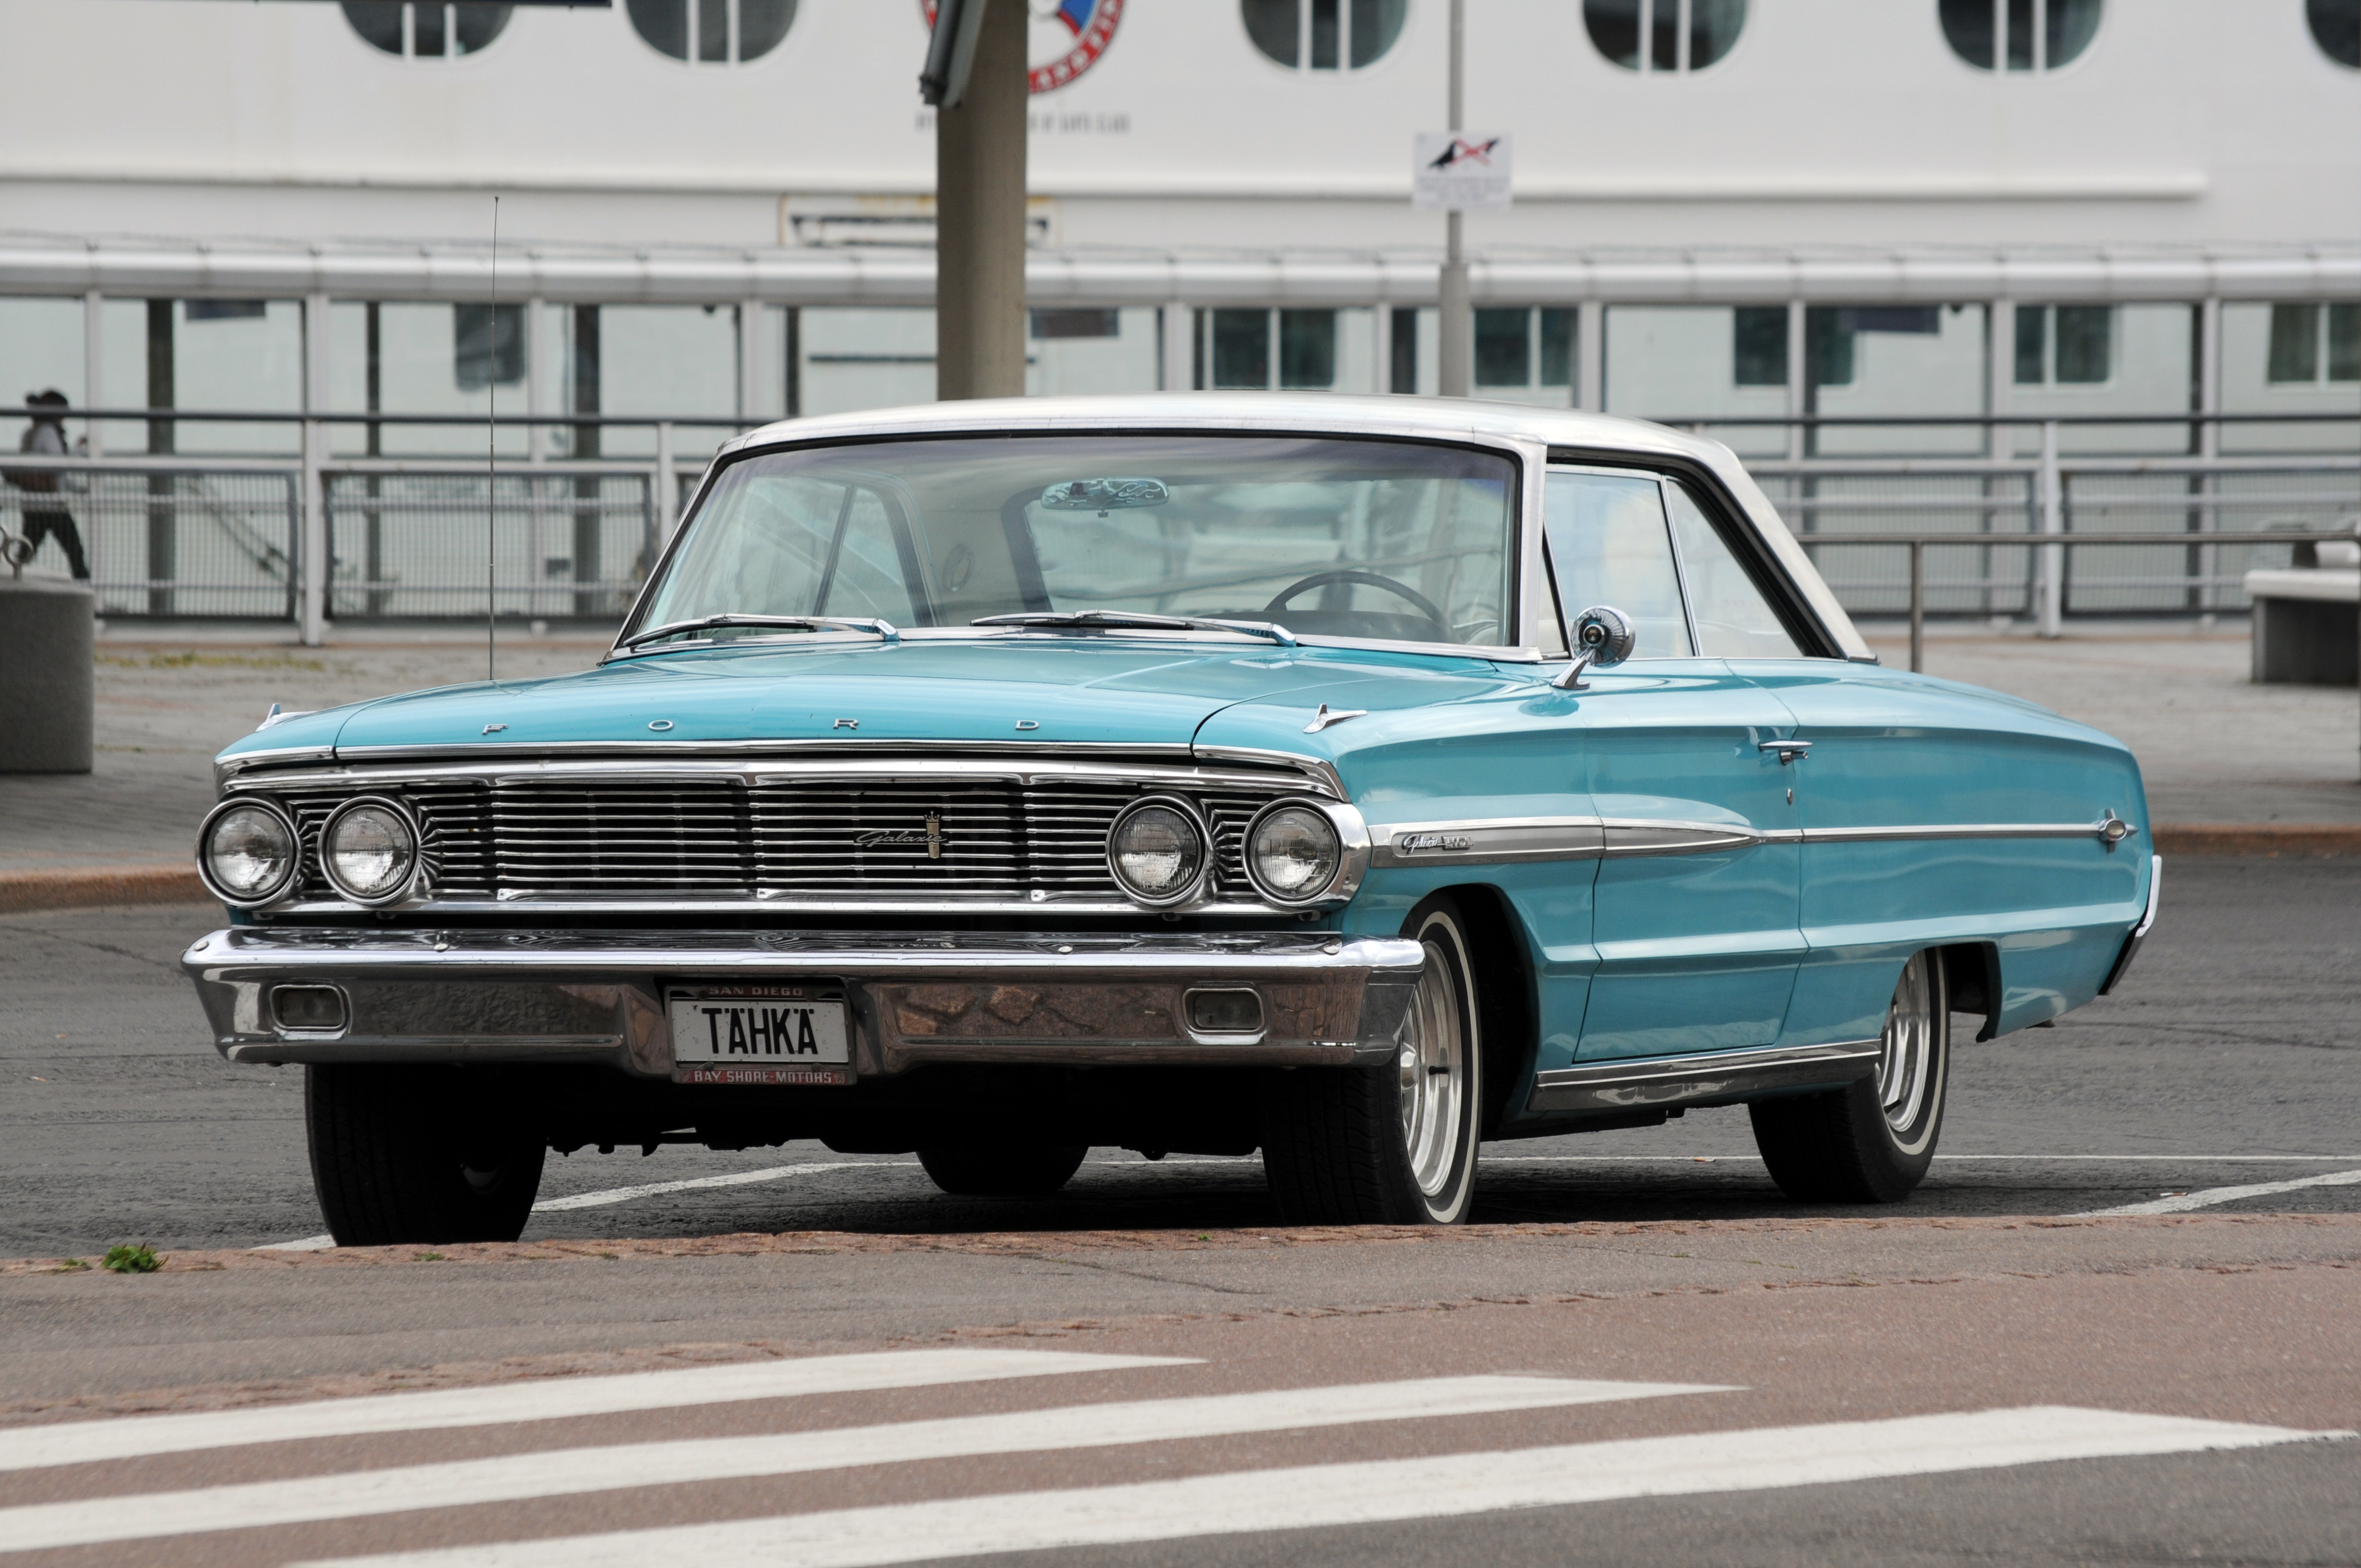 2011-07-31-ford-galaxie-by-RalfR-06